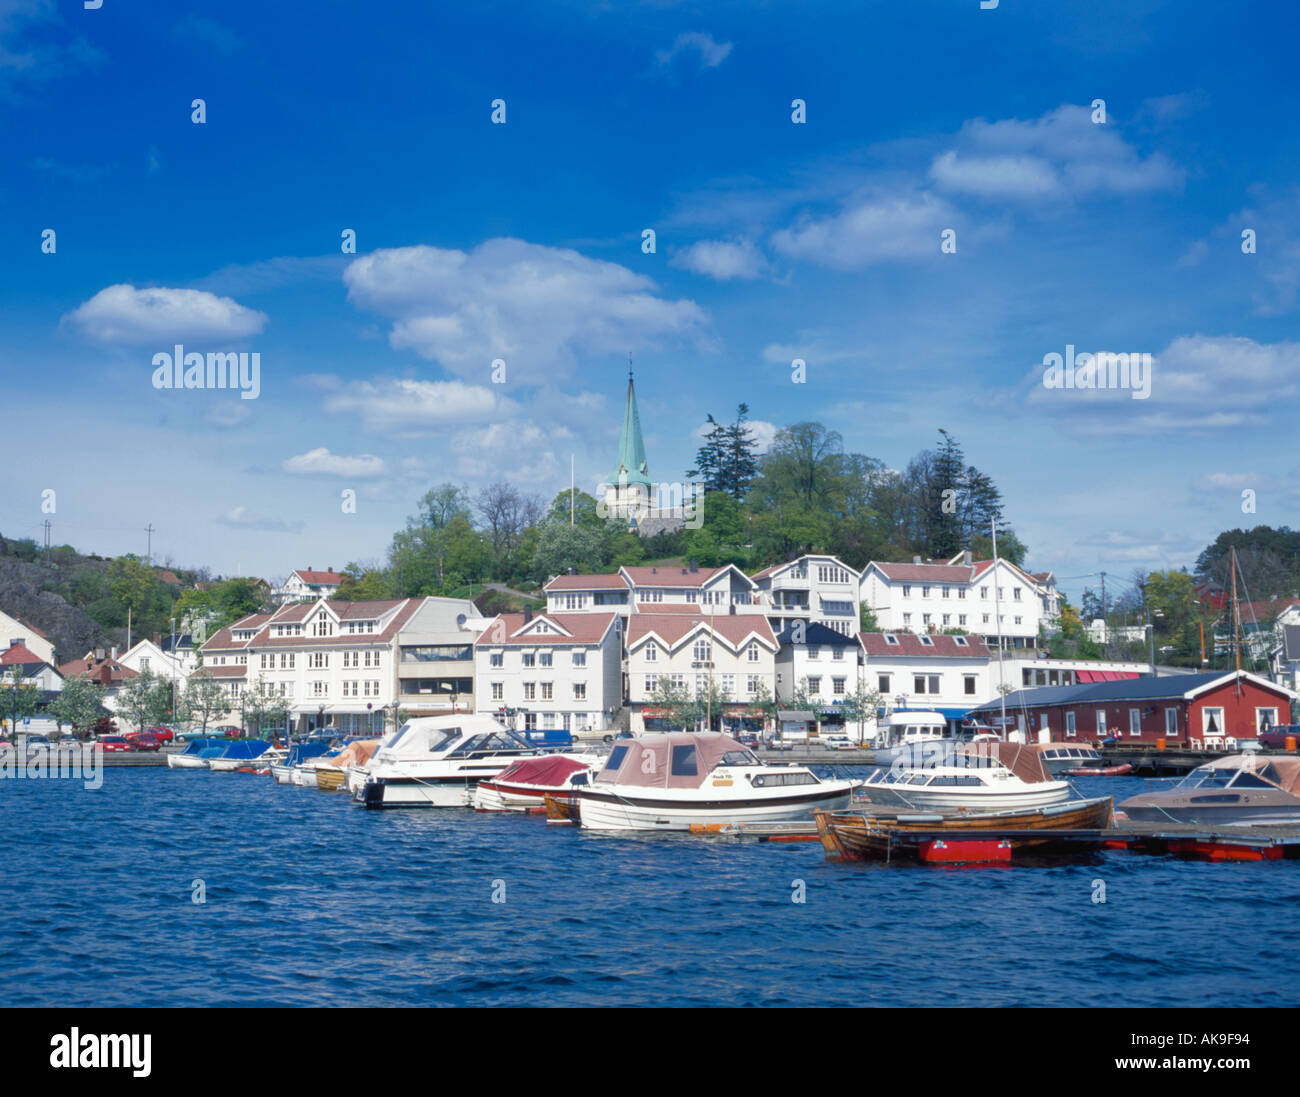 View over boats and harbour to picturesque village of Grimstad, Aust-Agder, Norway. - Stock Image